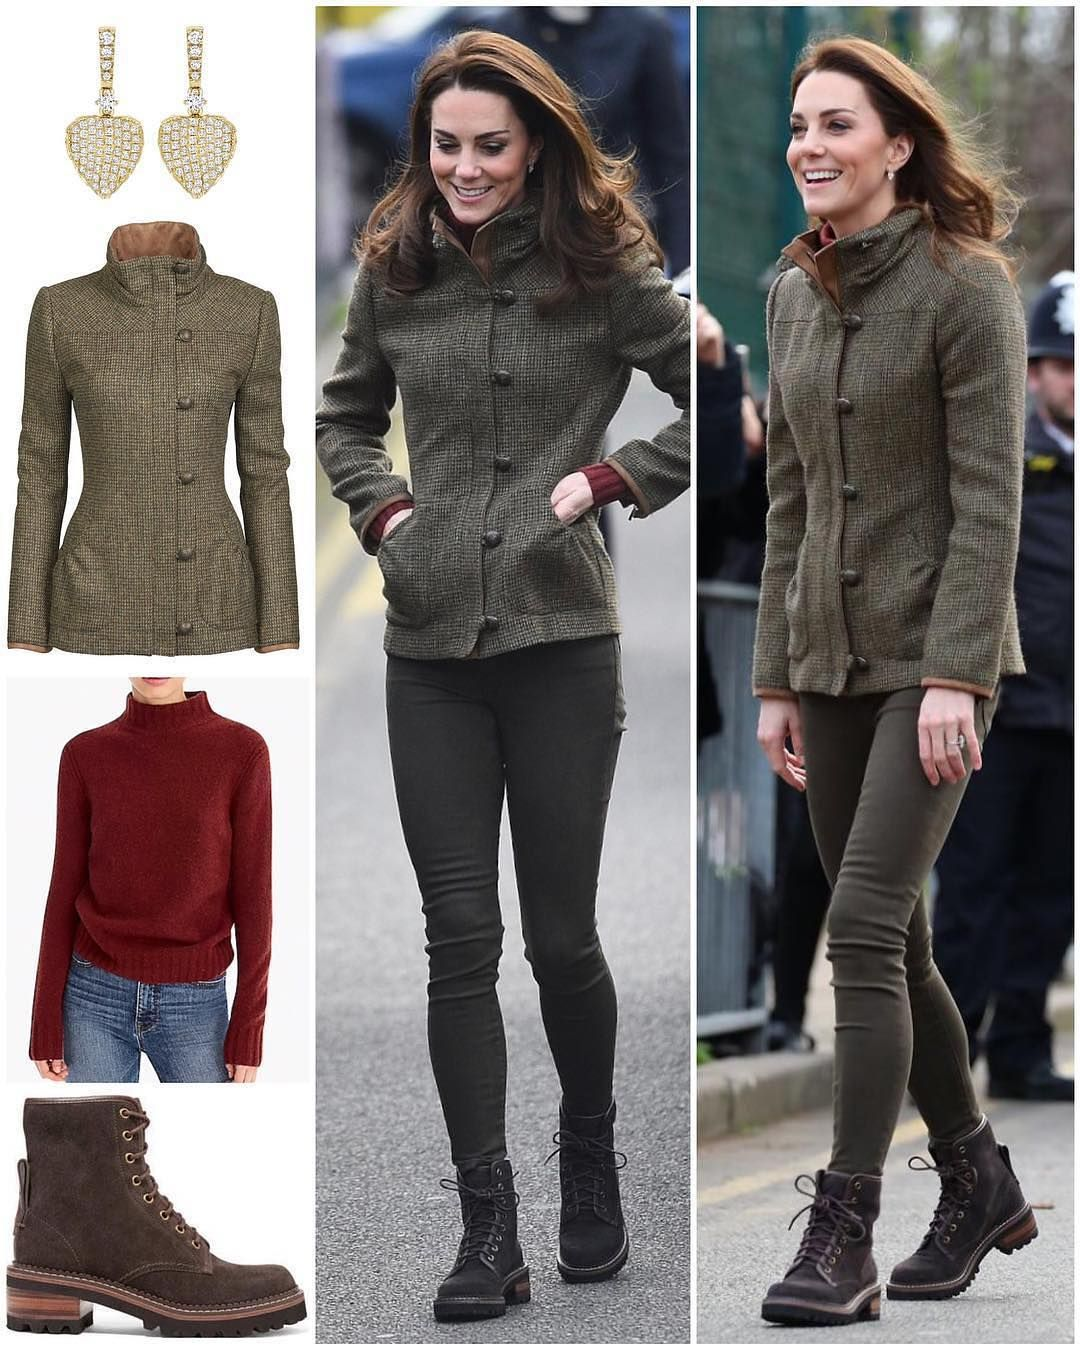 Make Me Royal On Instagram Posted Withrepost Katemidleton Today The Duchess Of Kate Middleton Style Outfits Kate Middleton Outfits Princess Kate Style